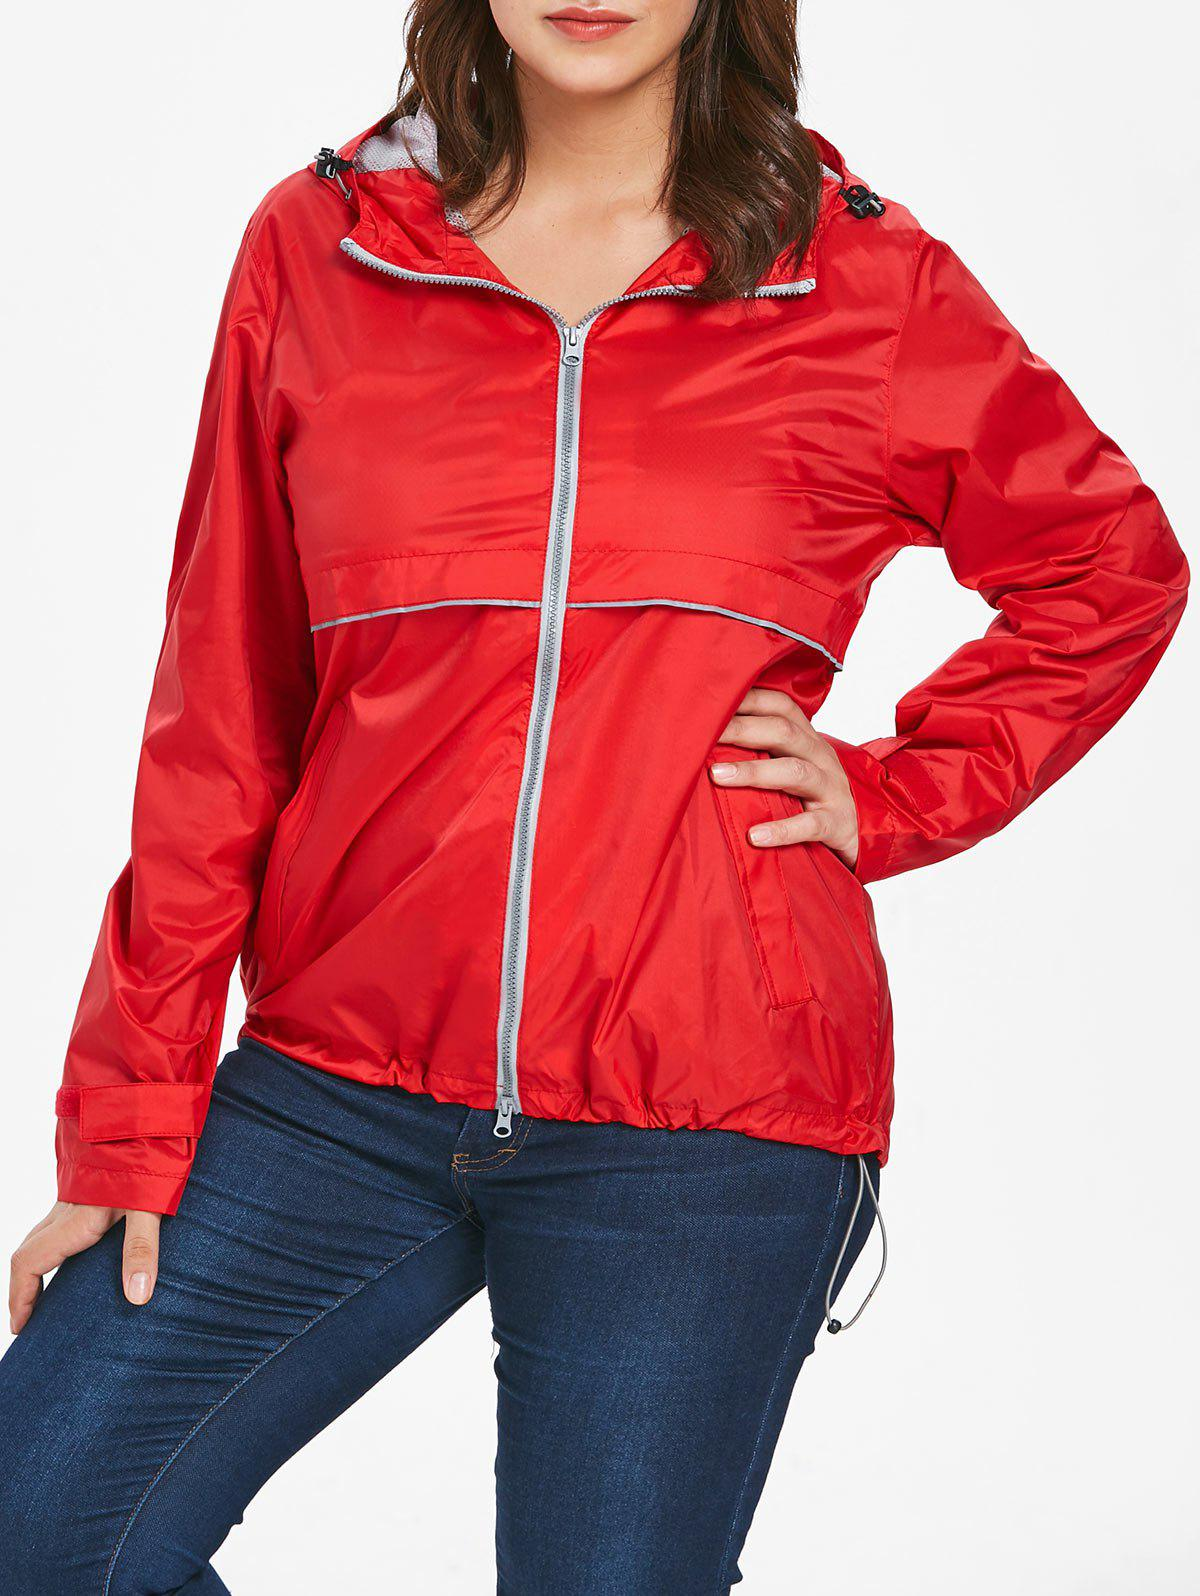 Chic Lightweight Plus Size Hooded Zip-Up Jacket